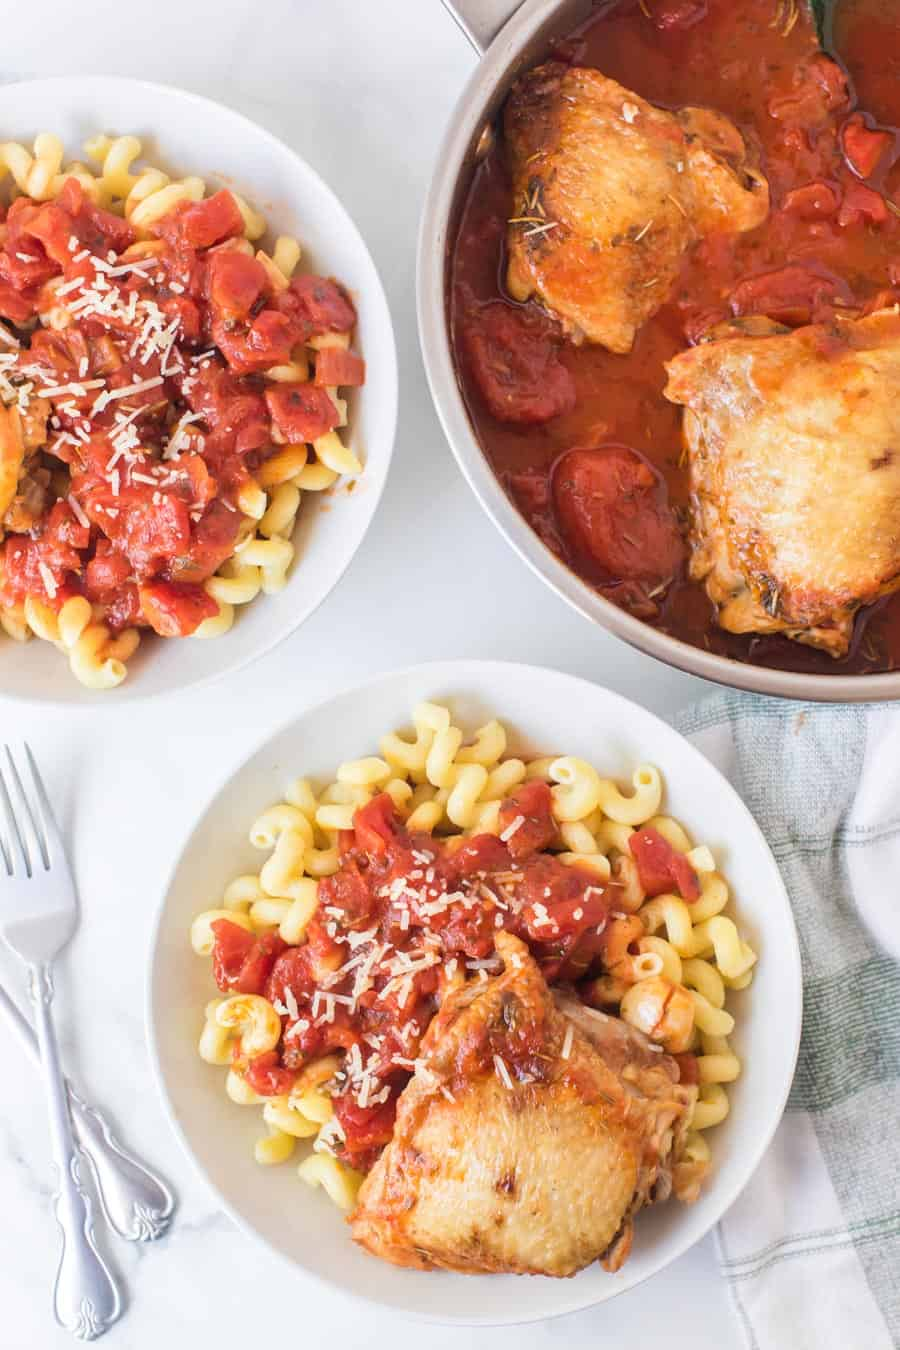 tomato and garlic cavatappi pasta with chicken thigh in white bowls and chicken thighs with garlic tomato sauce in skillet